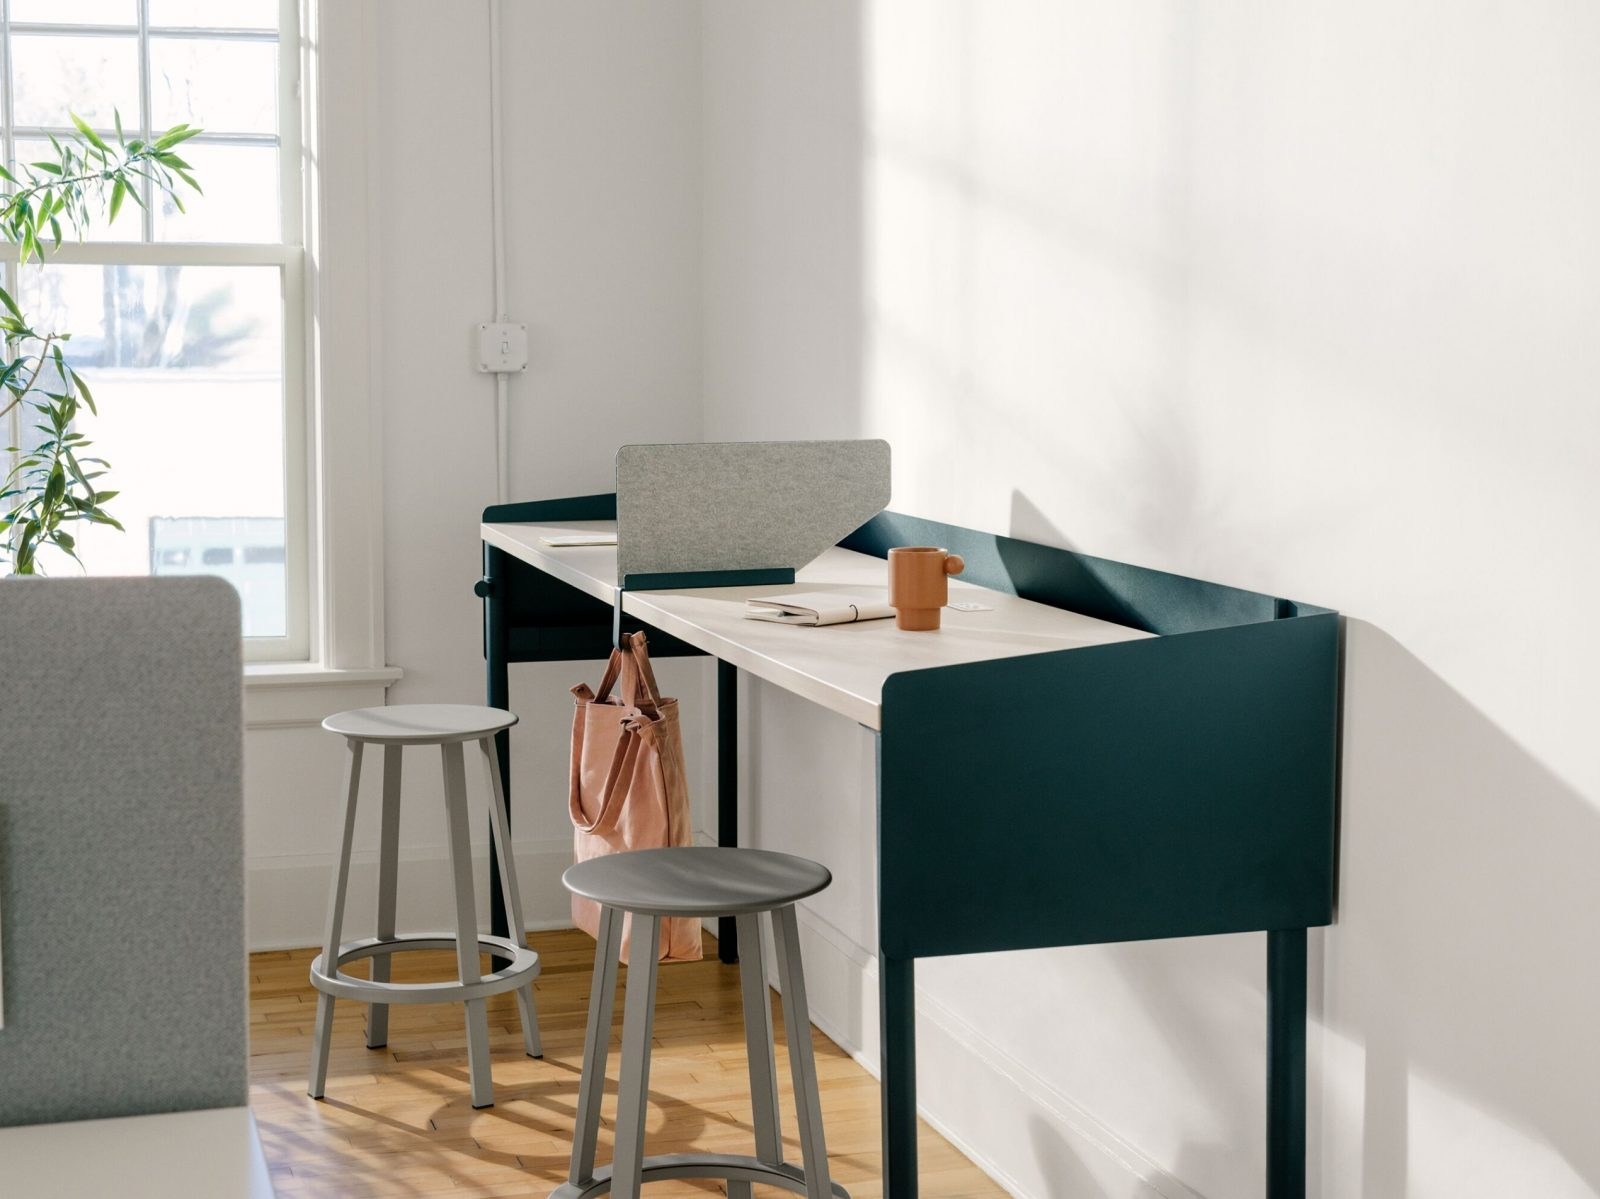 Oe1 product gallery 14